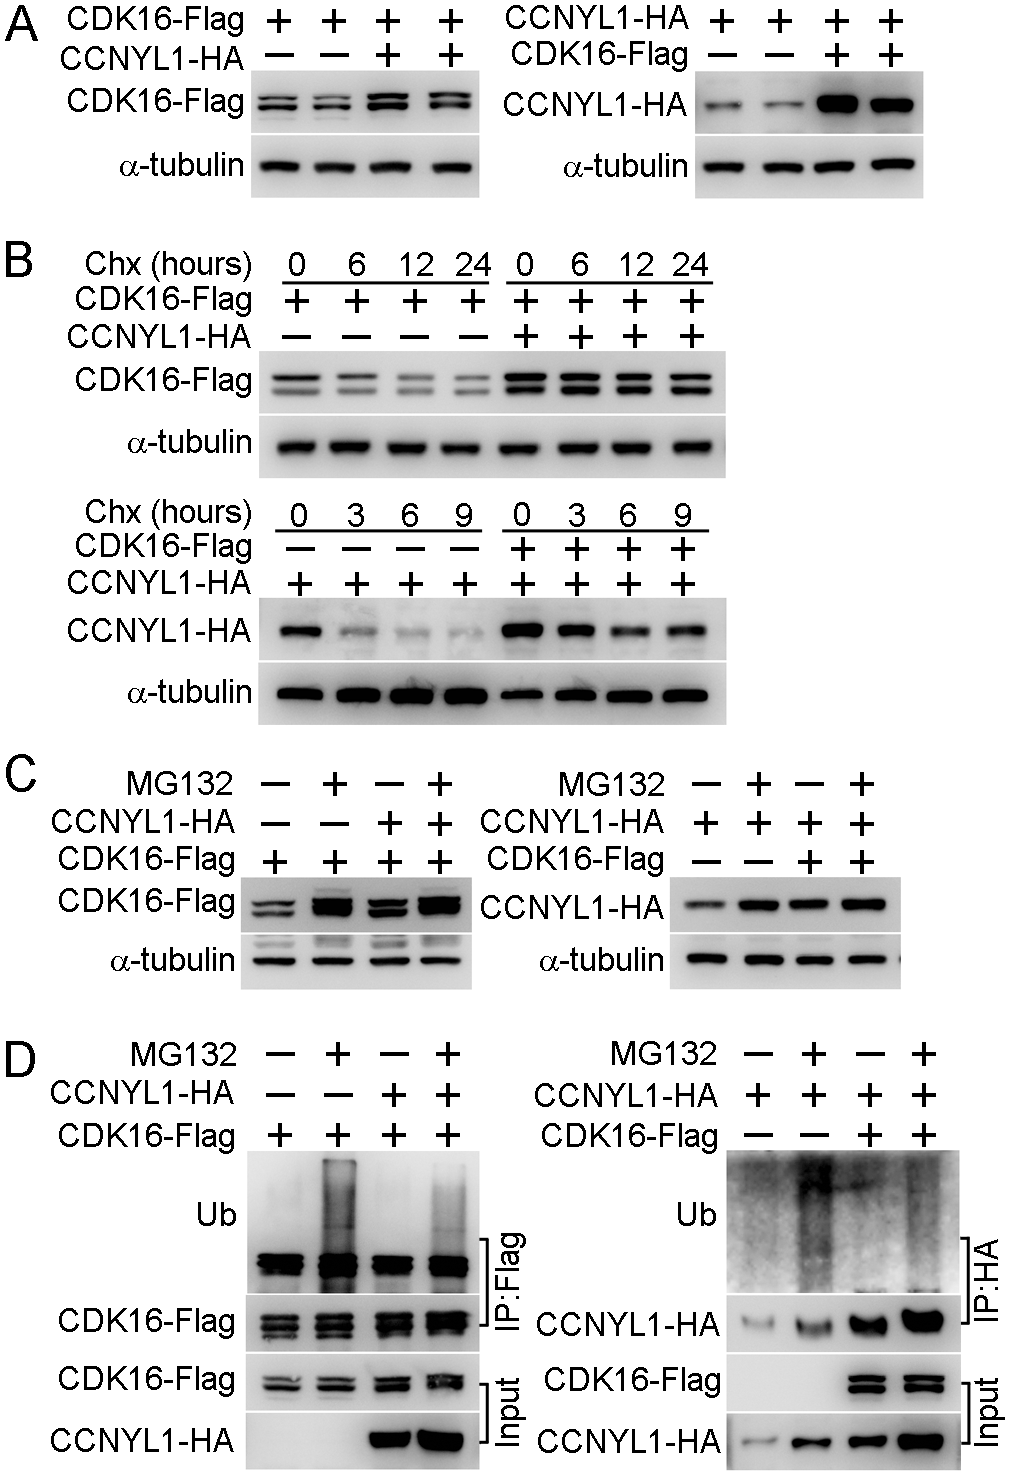 The interaction of CCNYL1 and CDK16 and protection of protein stability.